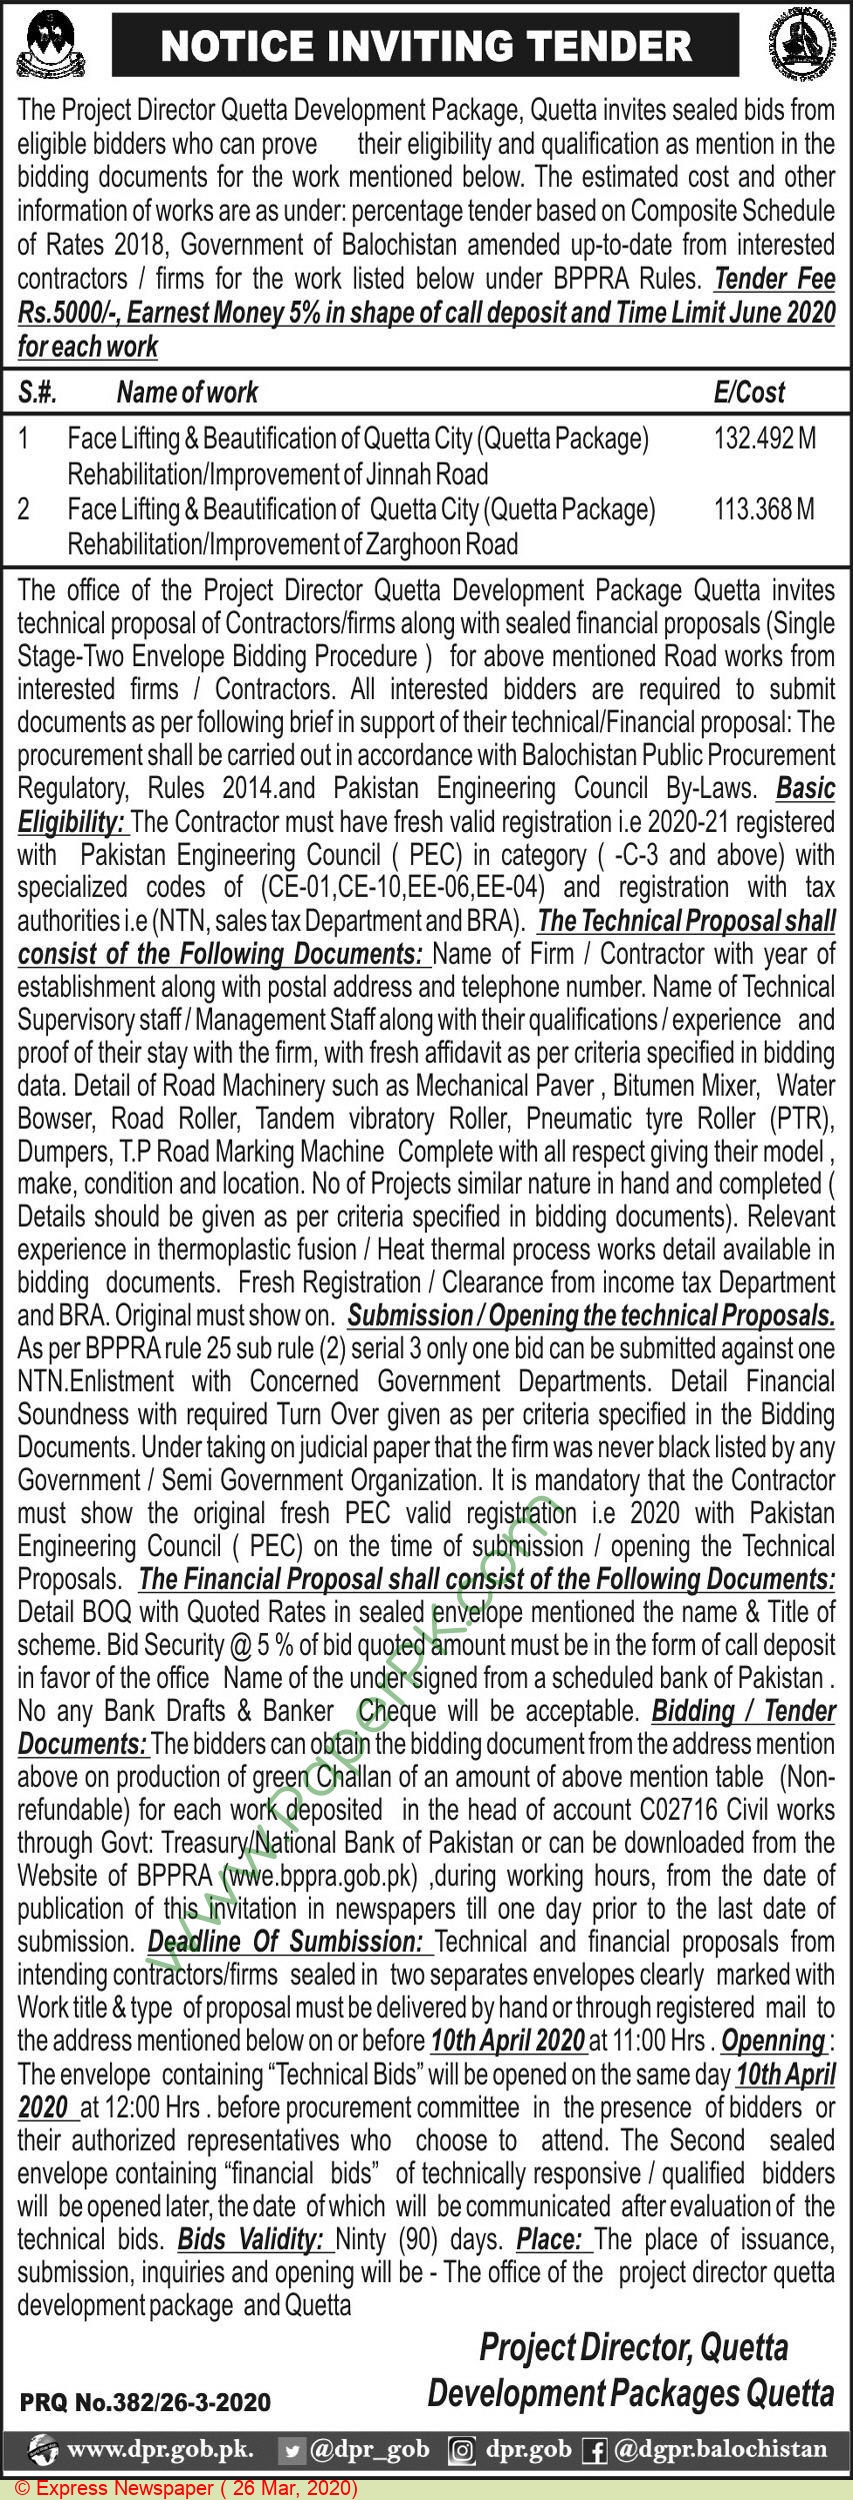 Development Packages Quetta Tender Notice